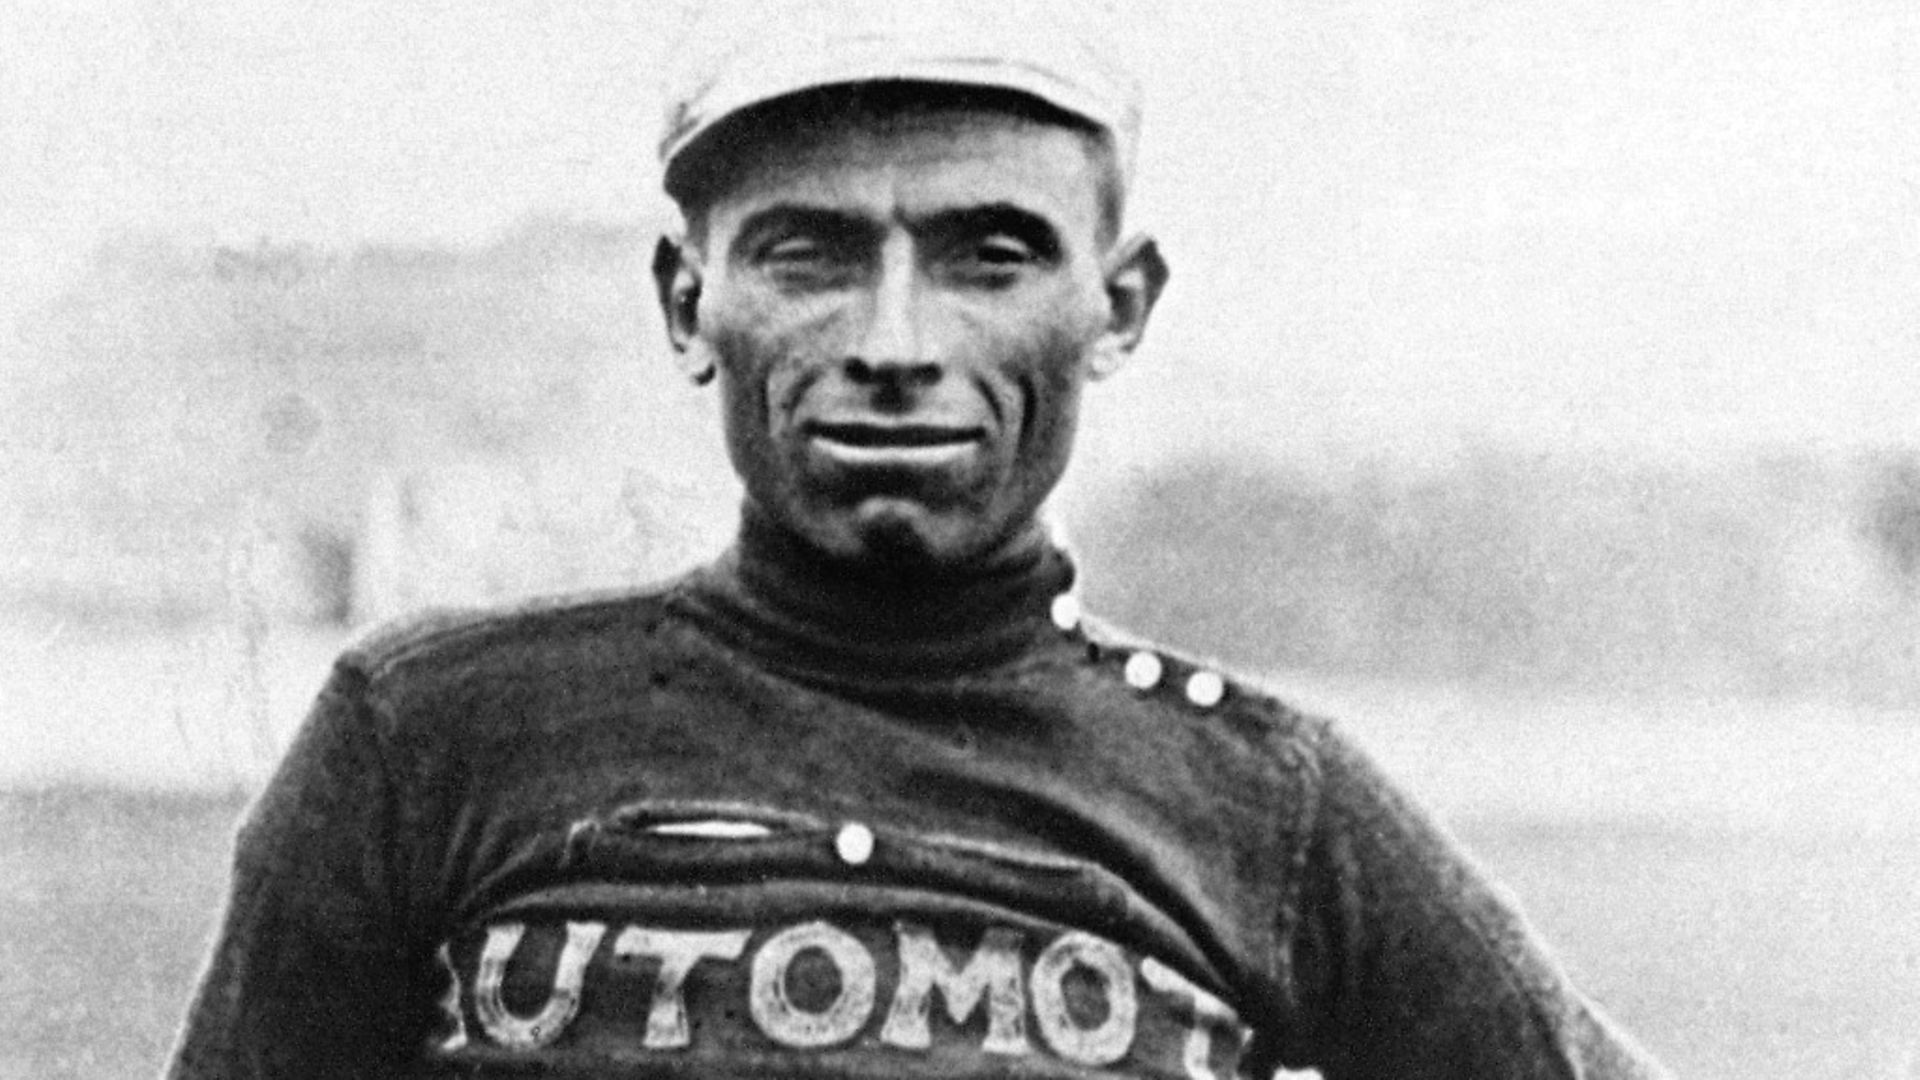 Portrait of Italian cyclist Ottavio Bottecchia taken in the mid 20's who won the Tour de France in 1924 and 1925. Bottecchia became the first rider to wear the yellow jersey of leader during the whole Tour de France after winning the first stage between Paris and Le Havre 22 June 1924. (NB)        (Photo credit should read STAFF/AFP via Getty Images) - Credit: AFP via Getty Images